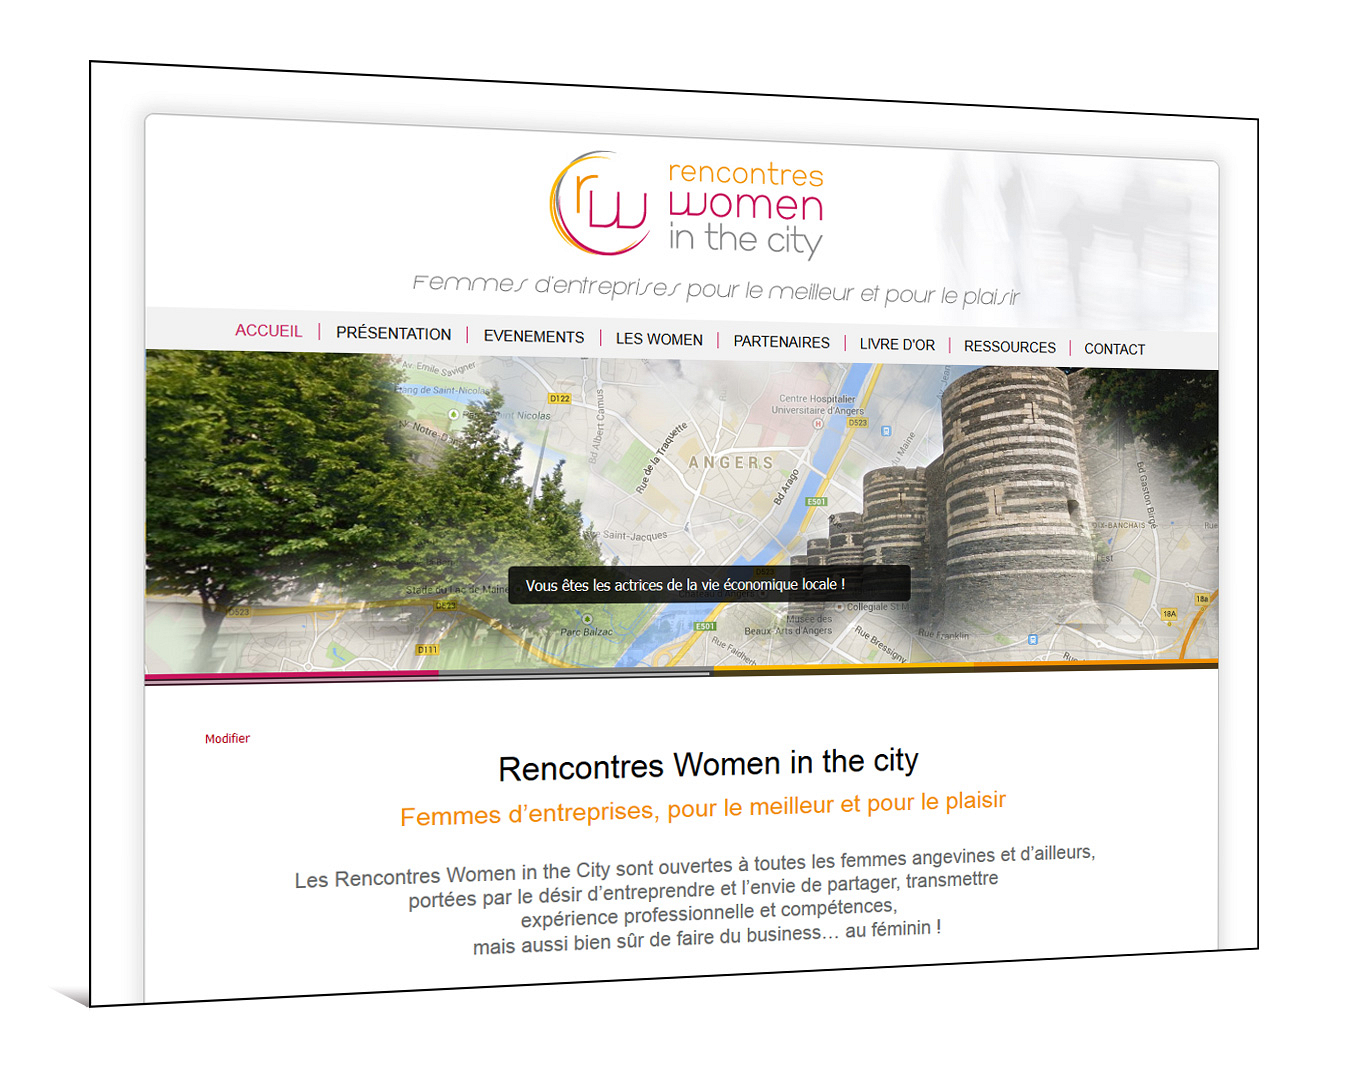 Site internet de Rencontres Women in the City : www.rencontreswomeninthecity.com